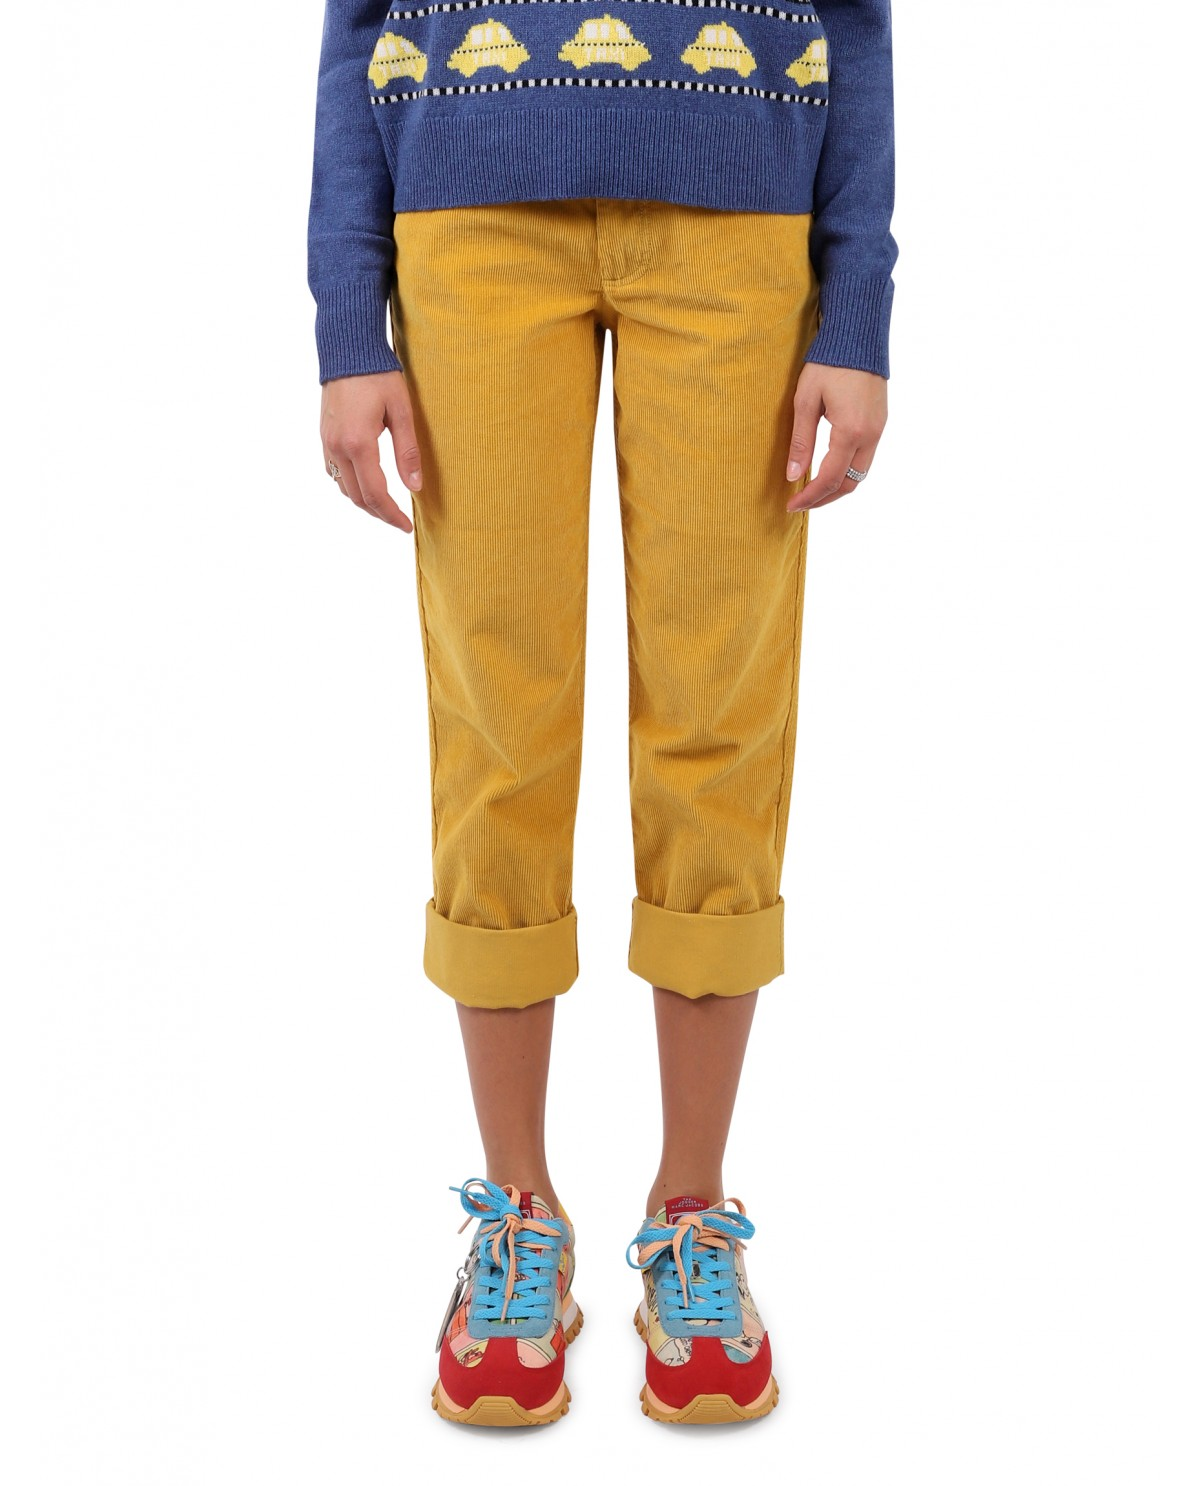 Marc Jacobs yellow turn-up jeans